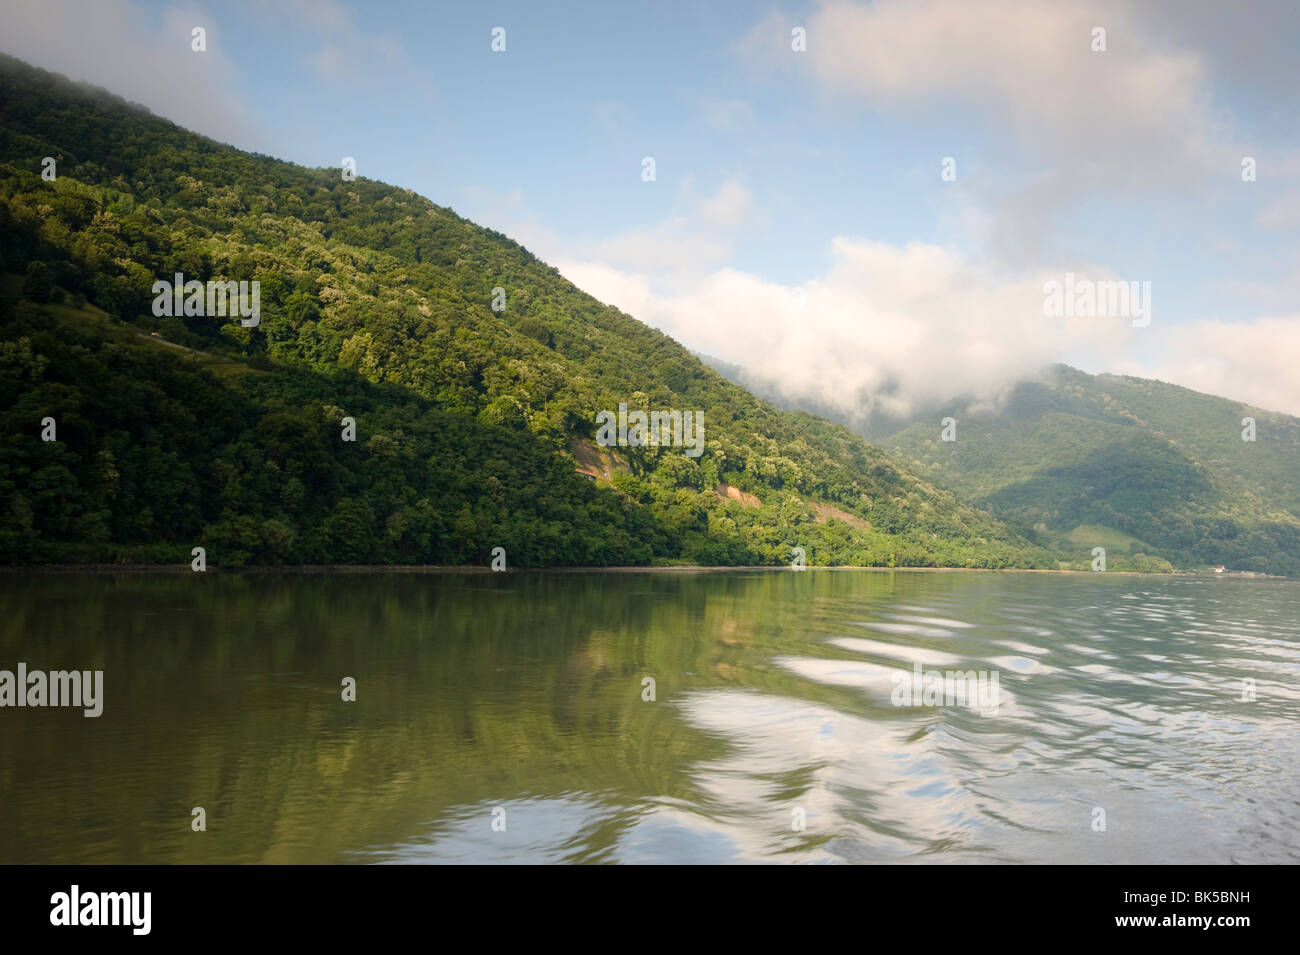 A view of the Kazan Gorge from a ship cruising on the Danube River between Serbia and Romania, Europe - Stock Image